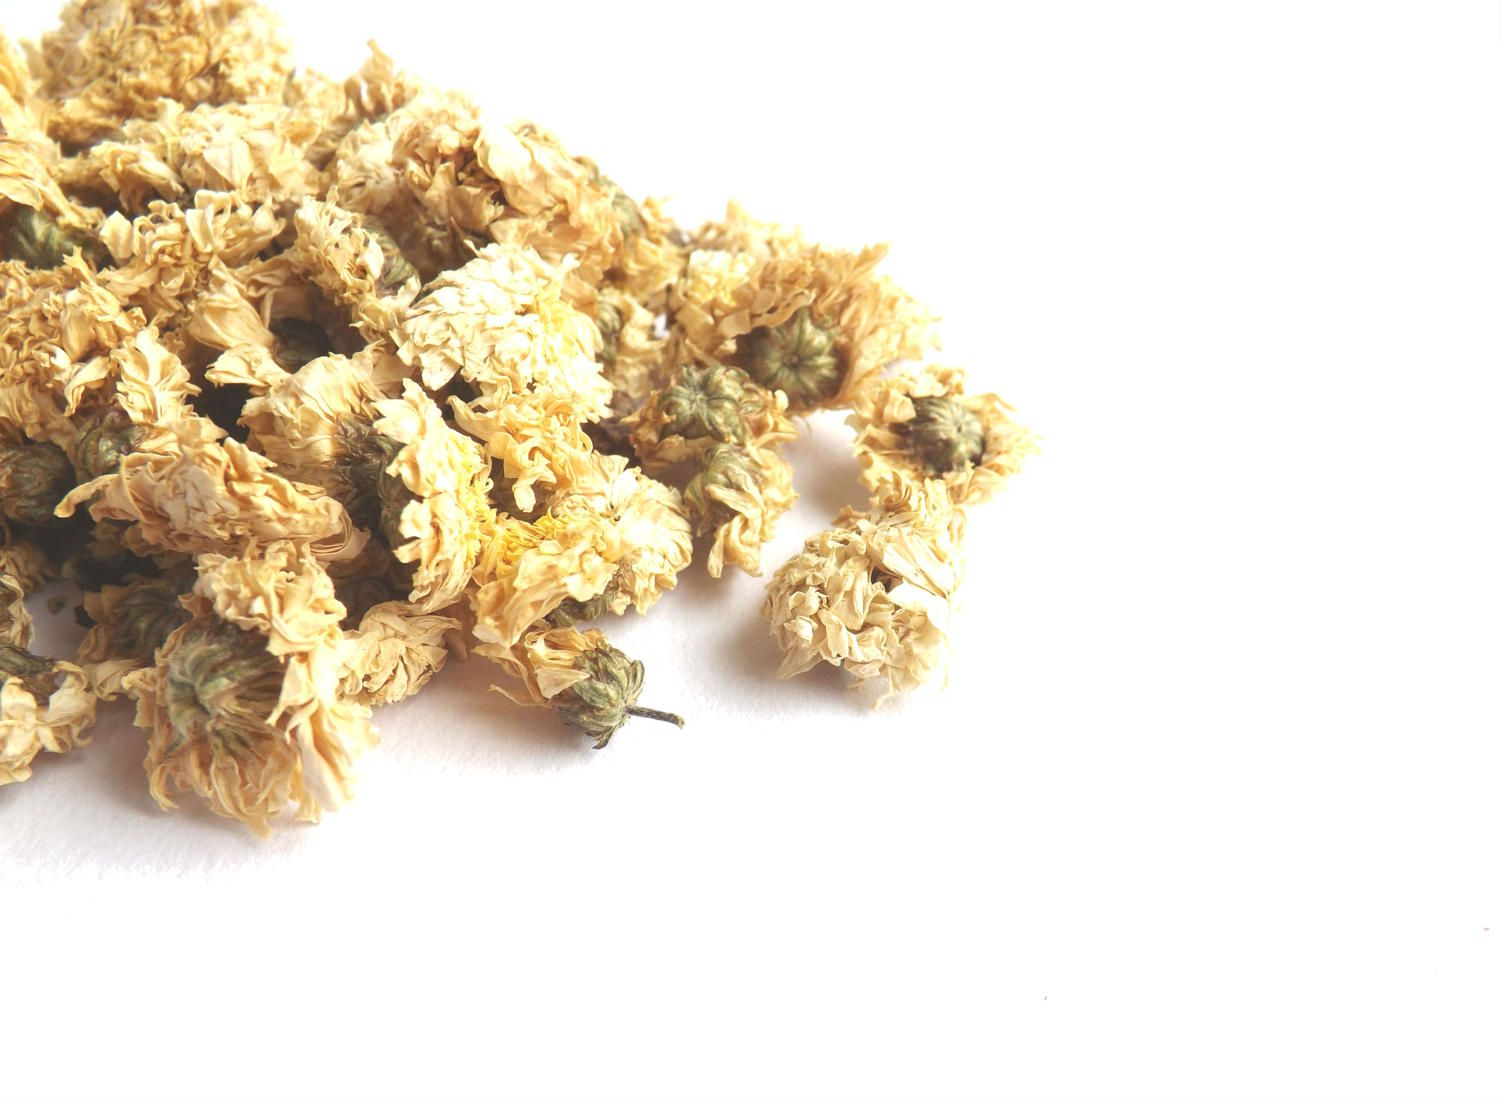 Chrysanthemum Flowers 1 2oz 1oz 2oz Dried Natural Biodegradable Dried Flowers Craft Soap Making Bath Bomb Candle Tea Making Dried Flowers Chrysanthemum Flower Chrysanthemum Plant